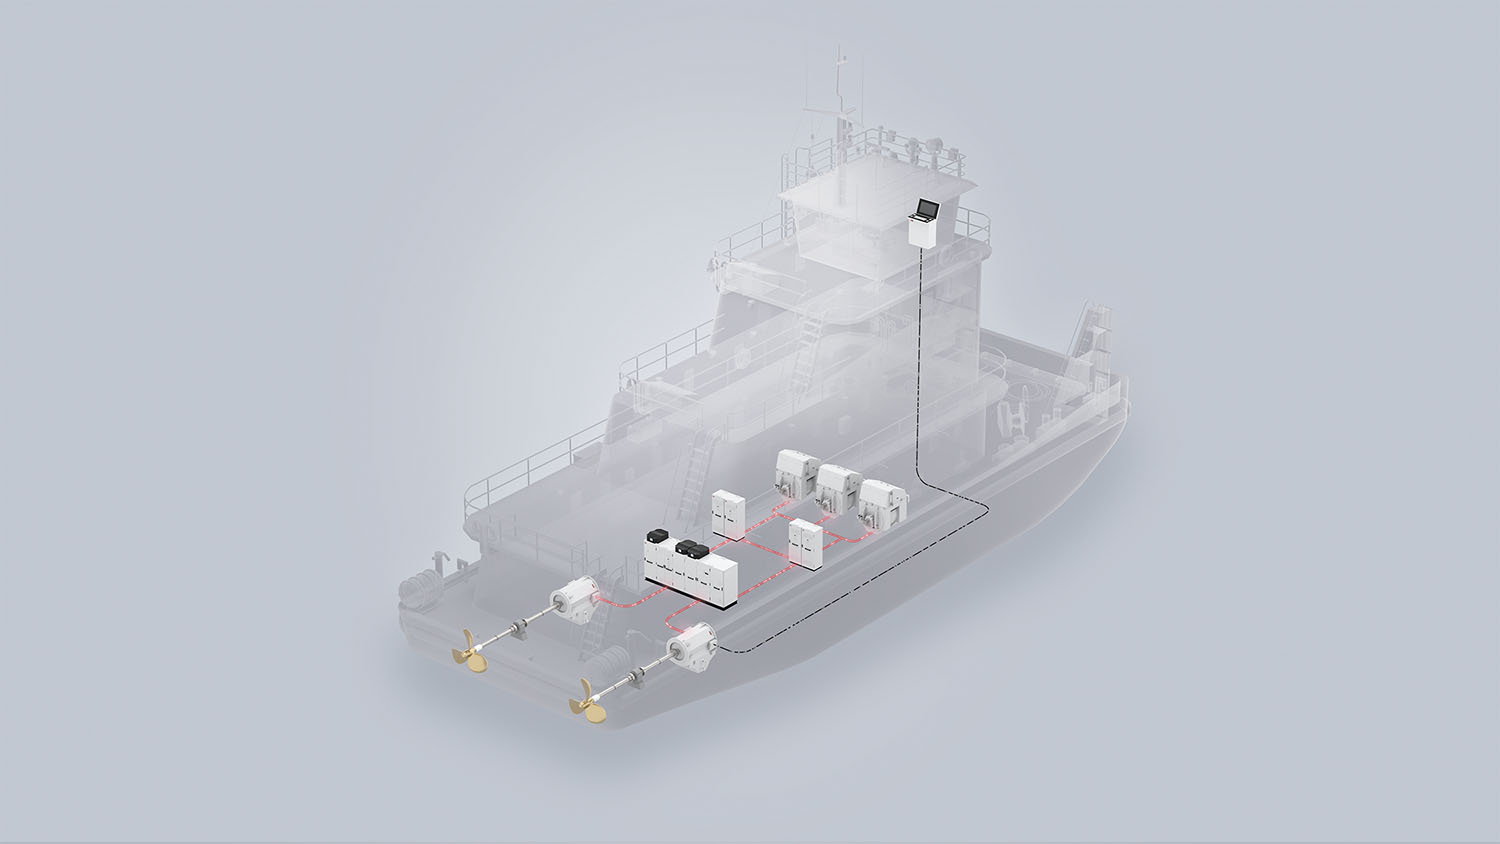 Towboat layout with three generators and two propellers. (Graphic courtesy of ABB)